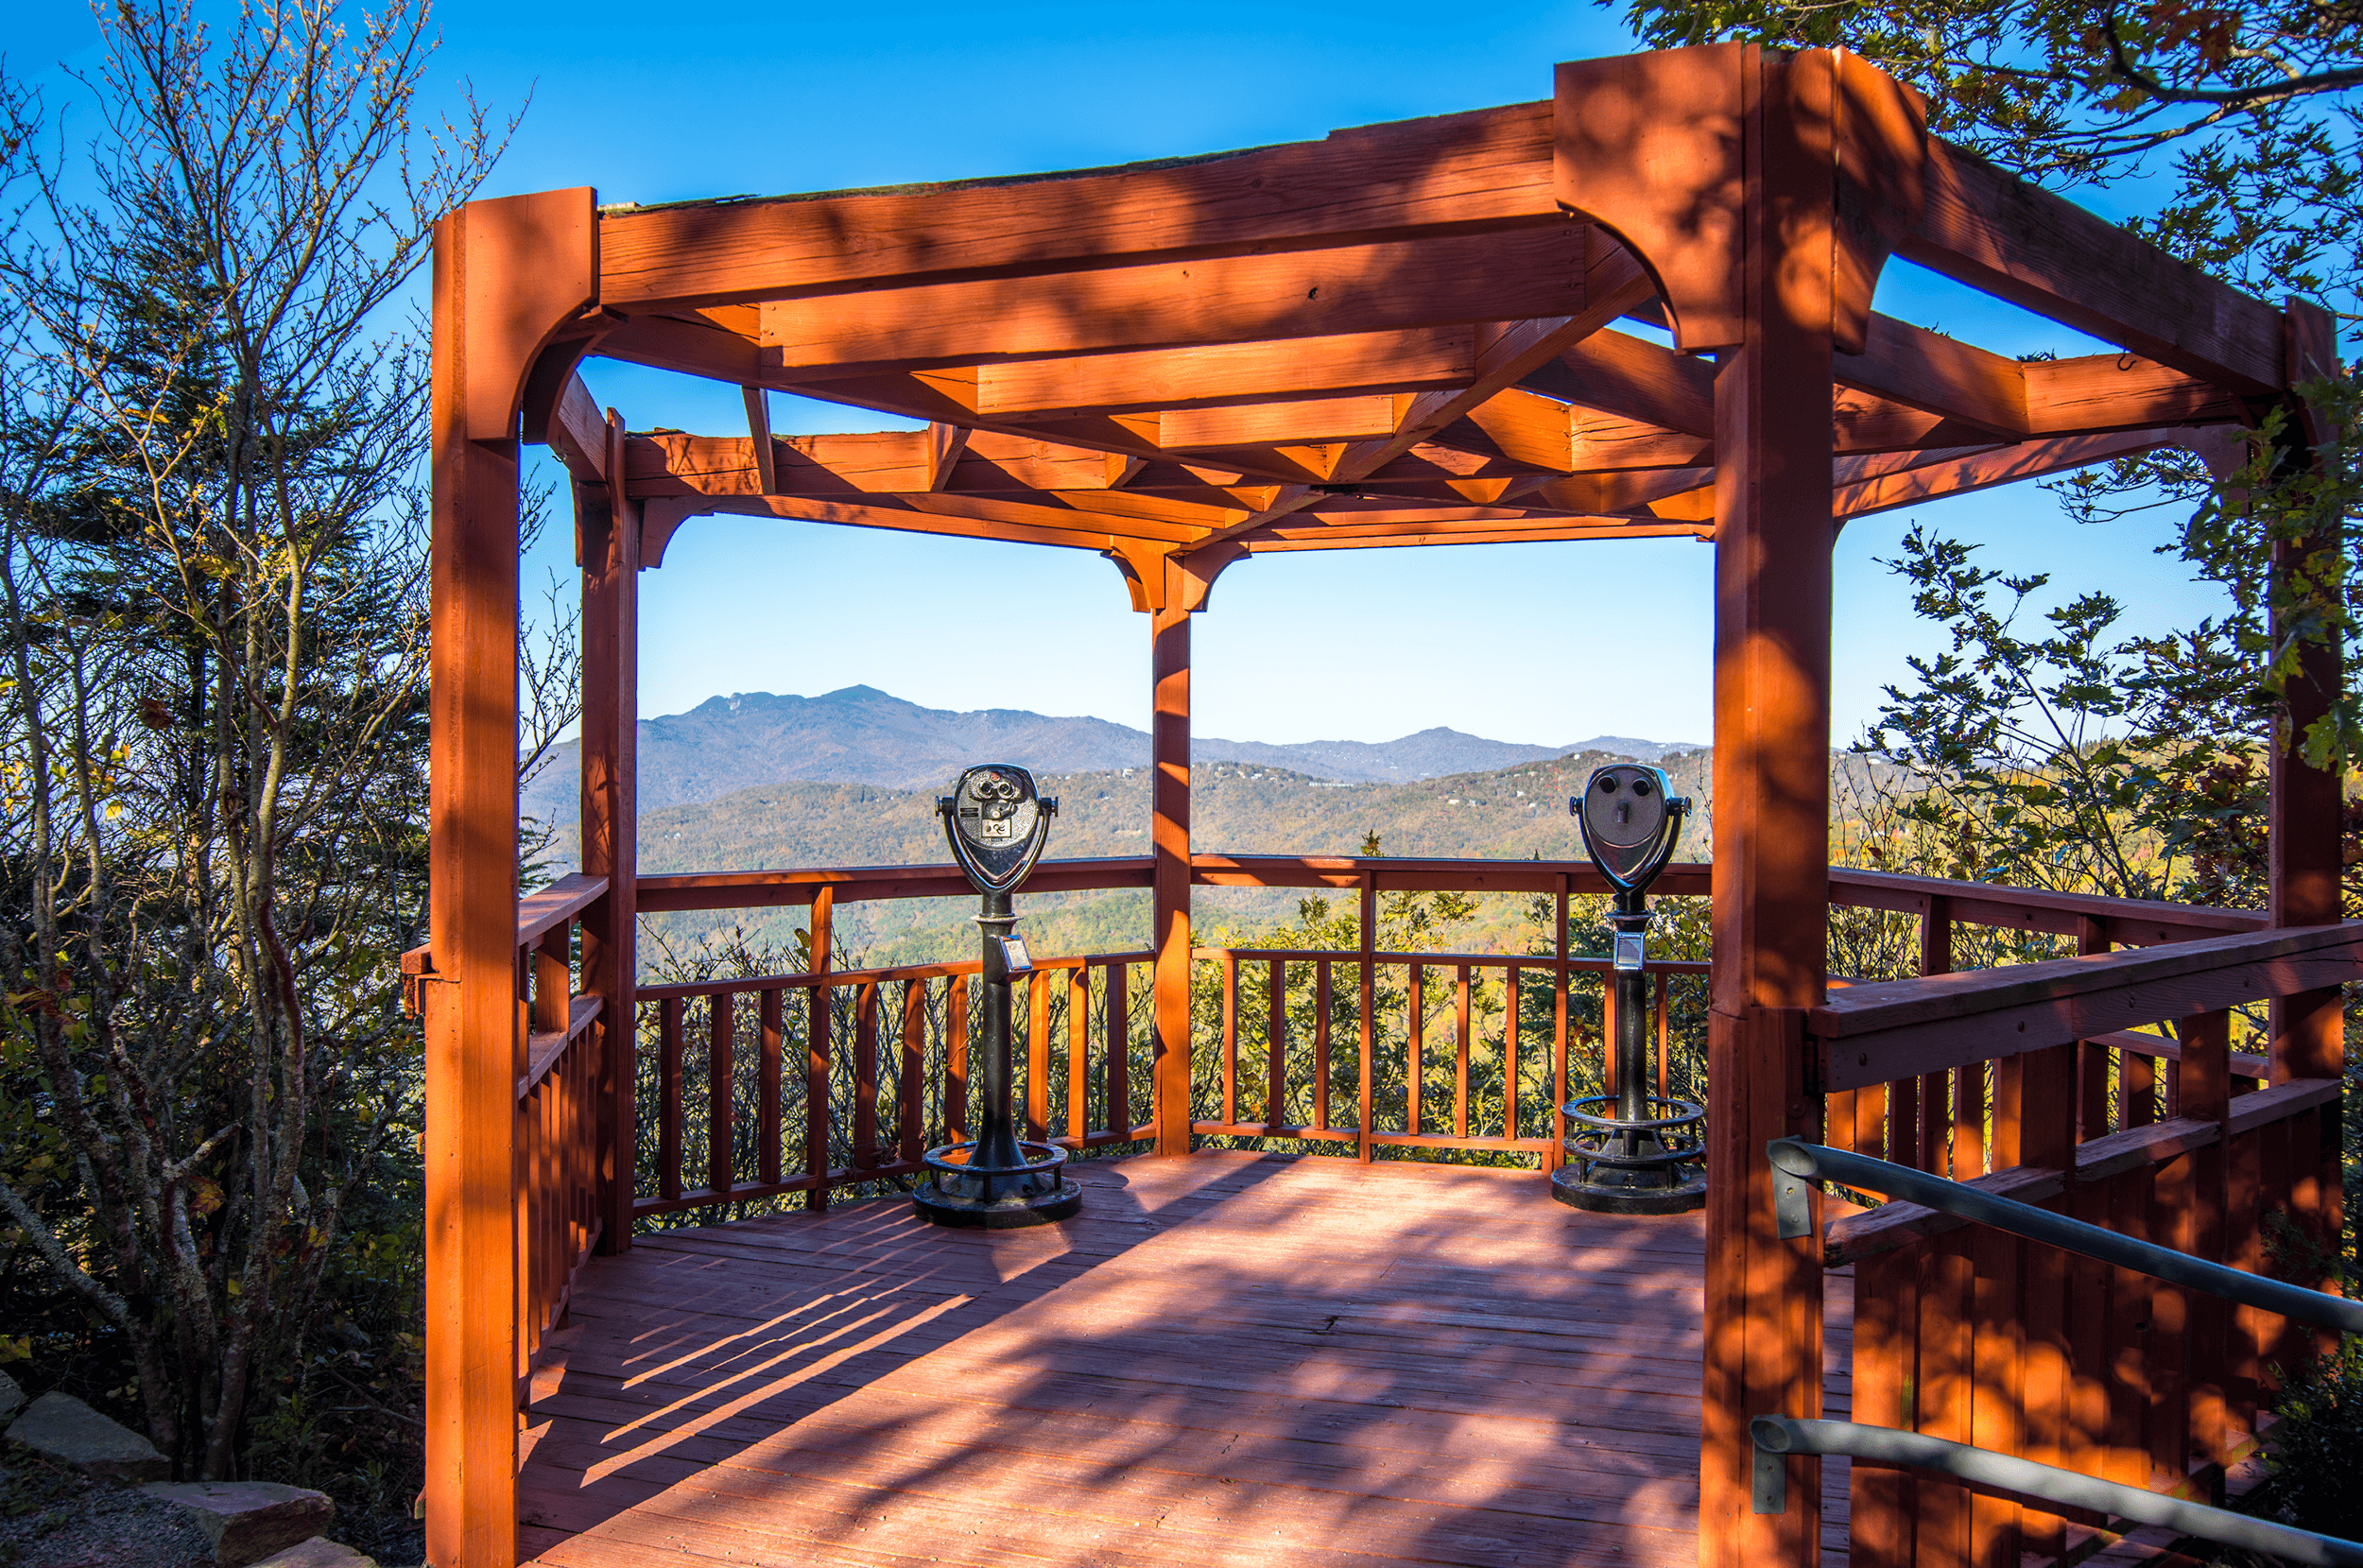 Although the park is small in size, it impresses visitors with its breathtaking views. A  Gazebo  and an  Observation Tower  are located in the park to allow visitors to enjoy unobstructed panoramic views.